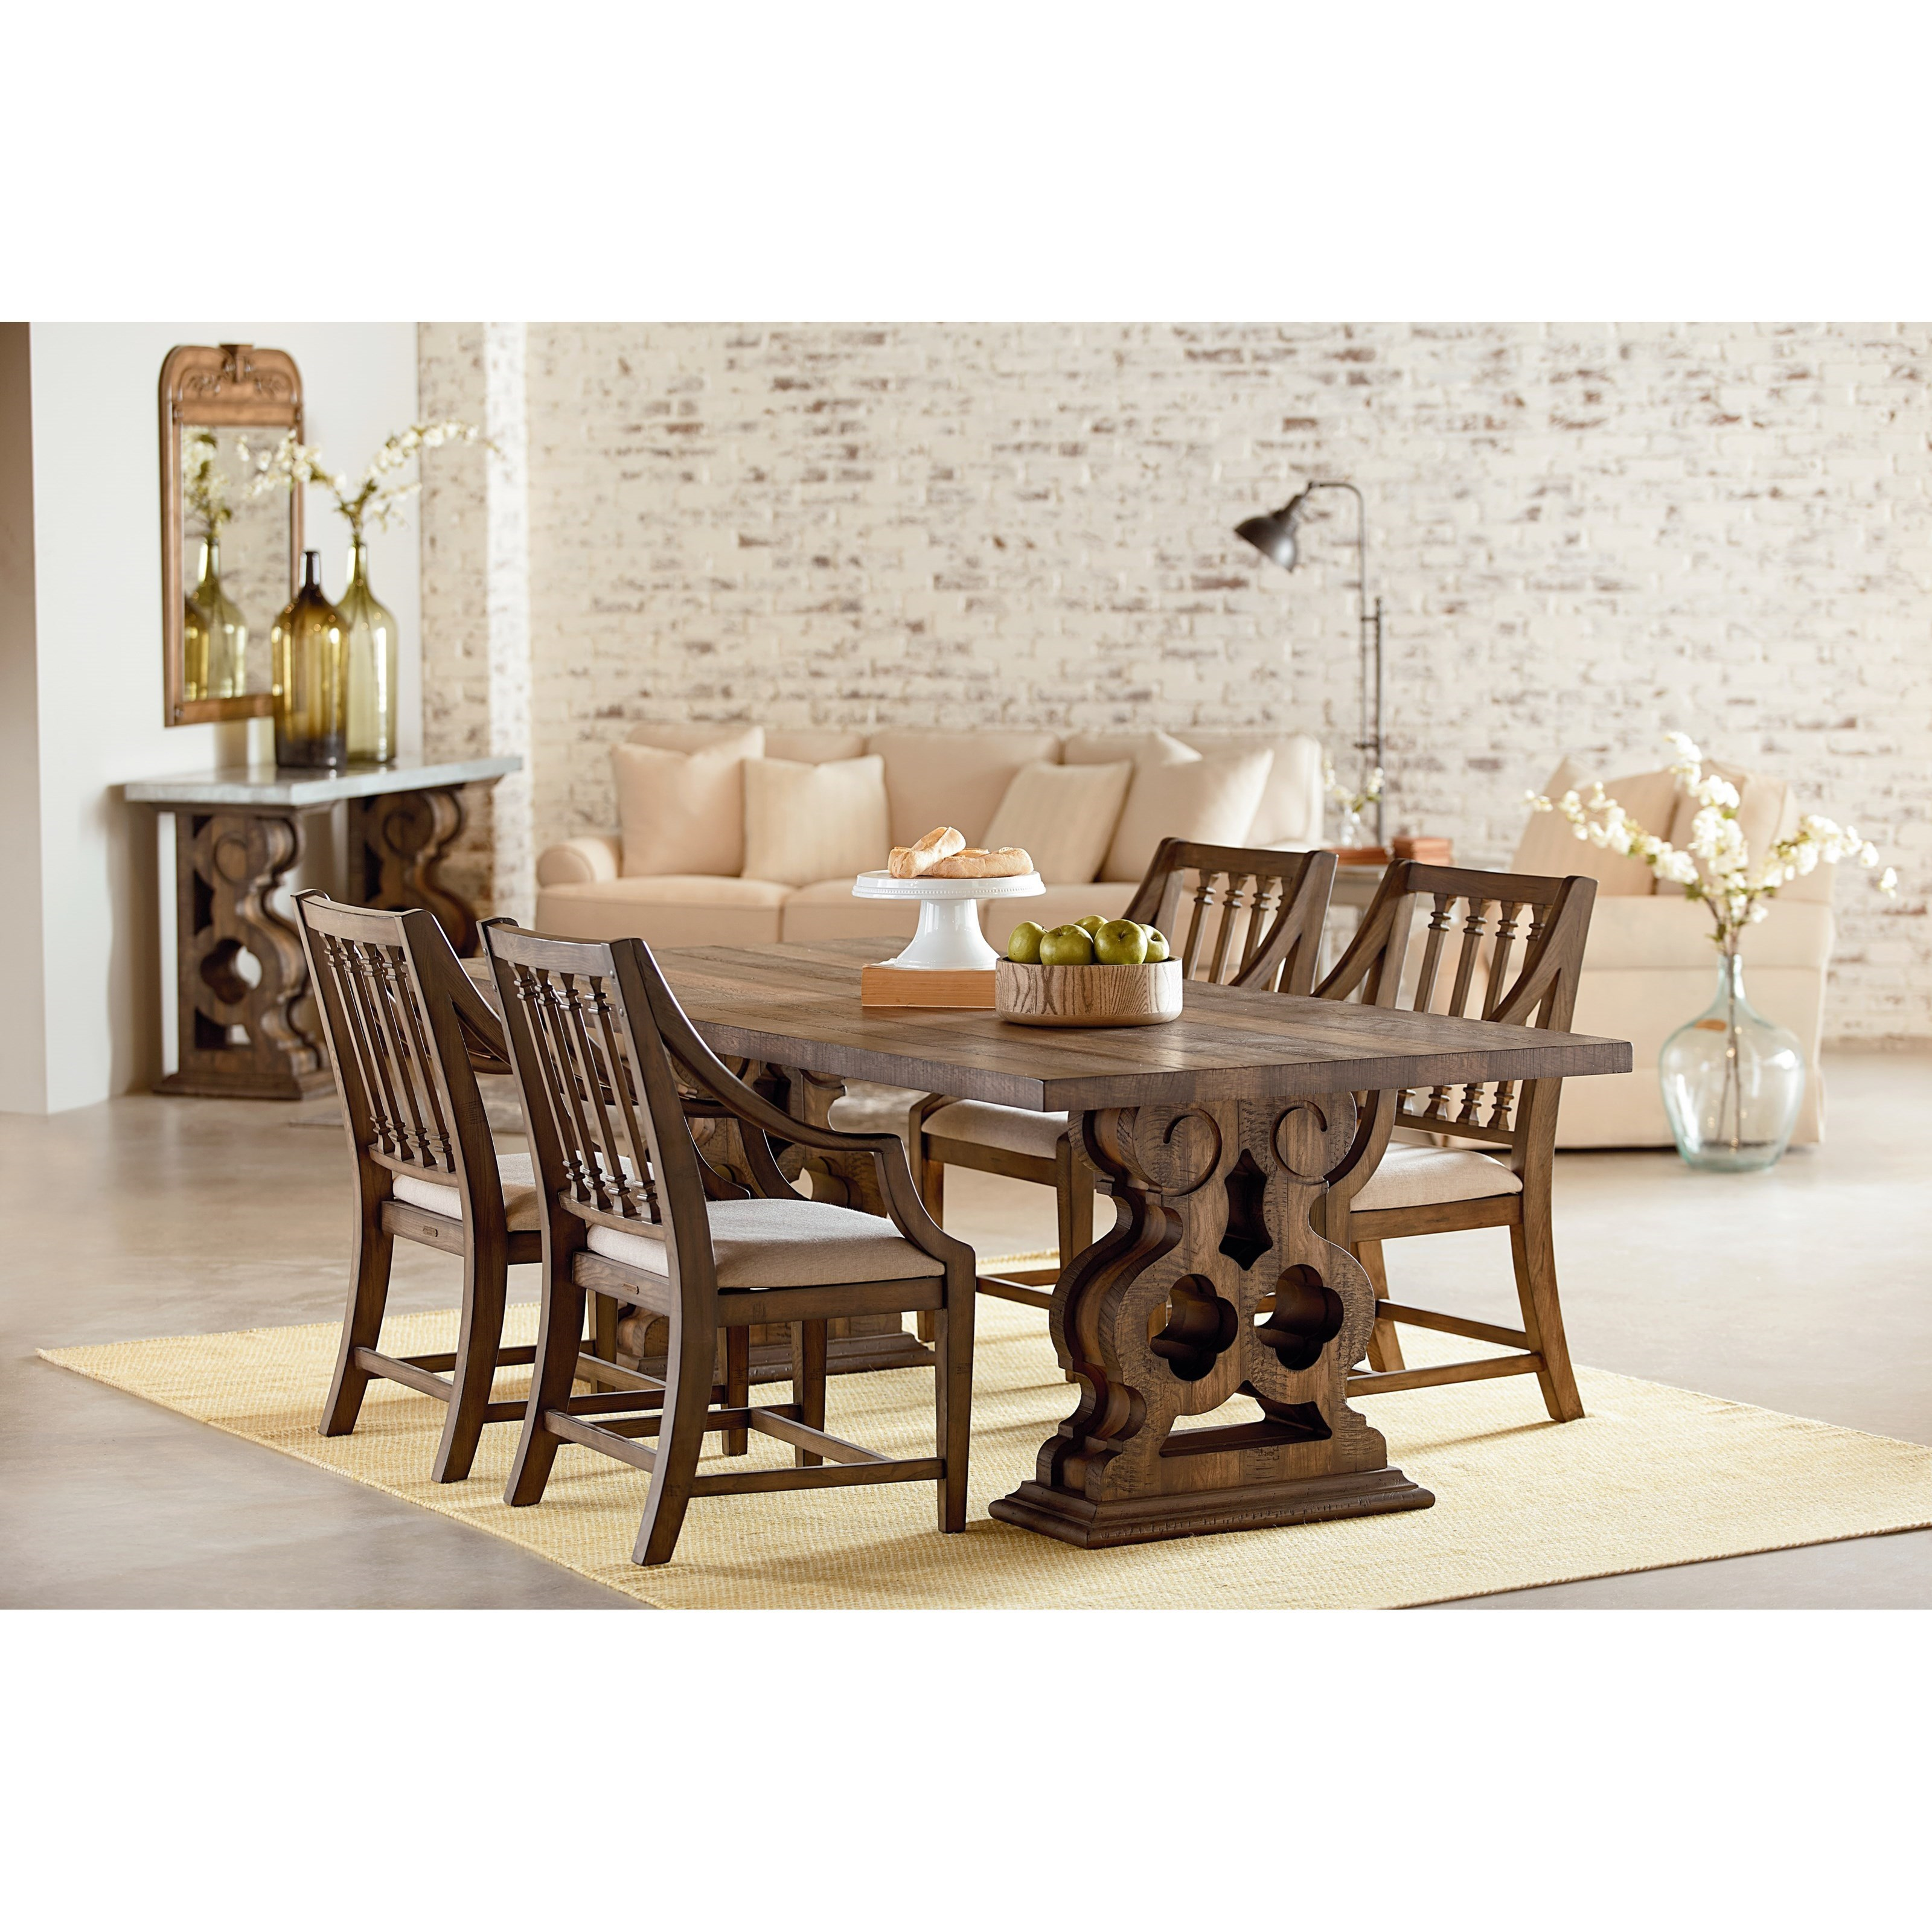 Magnolia Home By Joanna Gaines TraditionalTraditional Double Pedestal Dining  Room ...